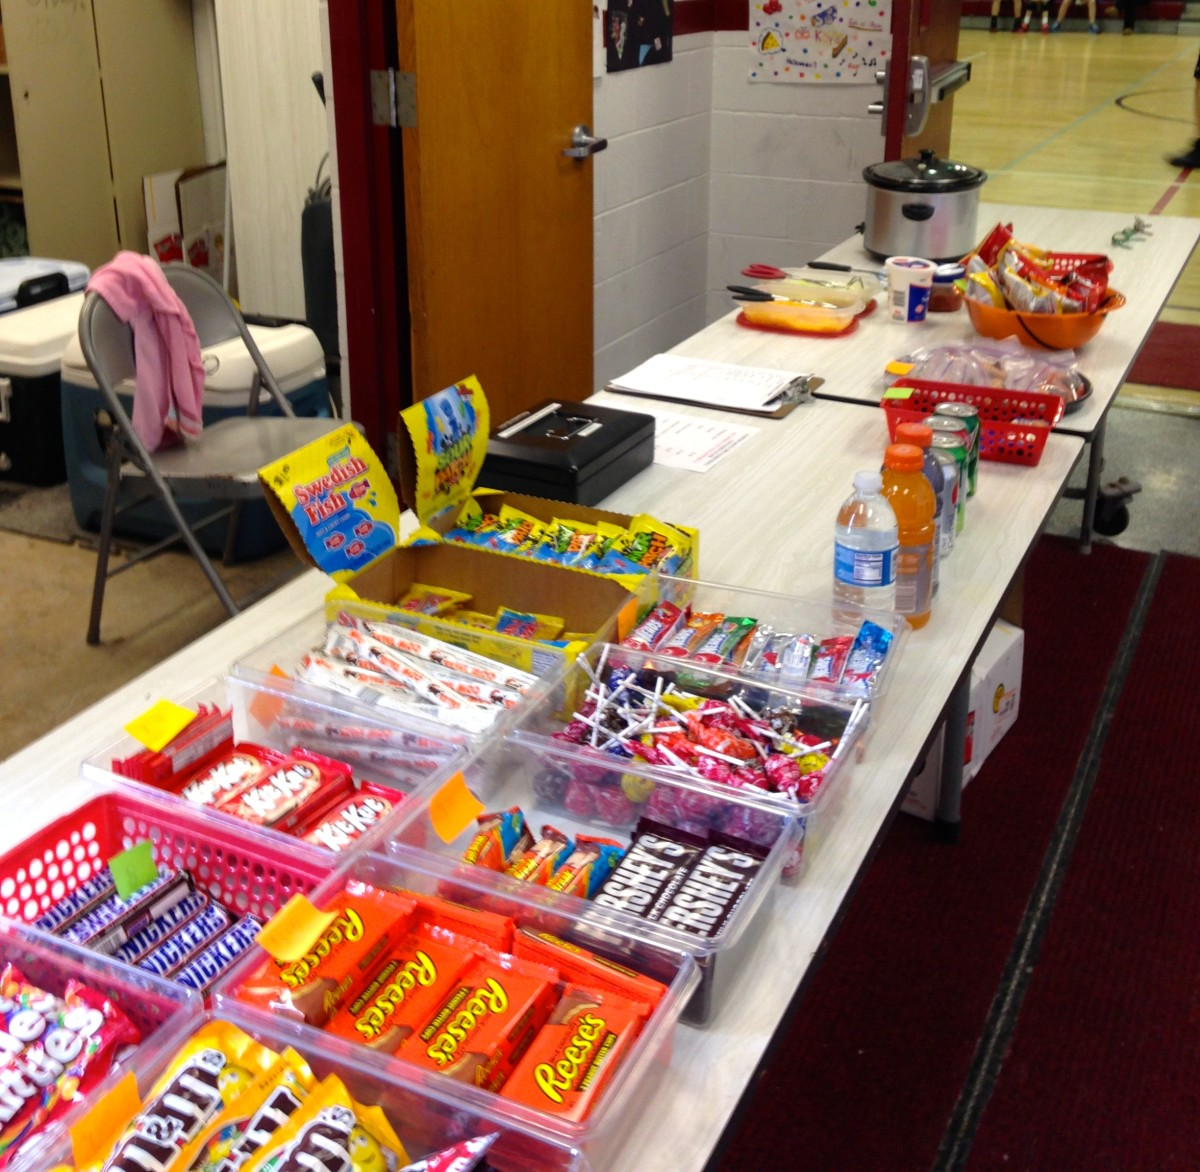 School concession stands can bring in a lot of money.